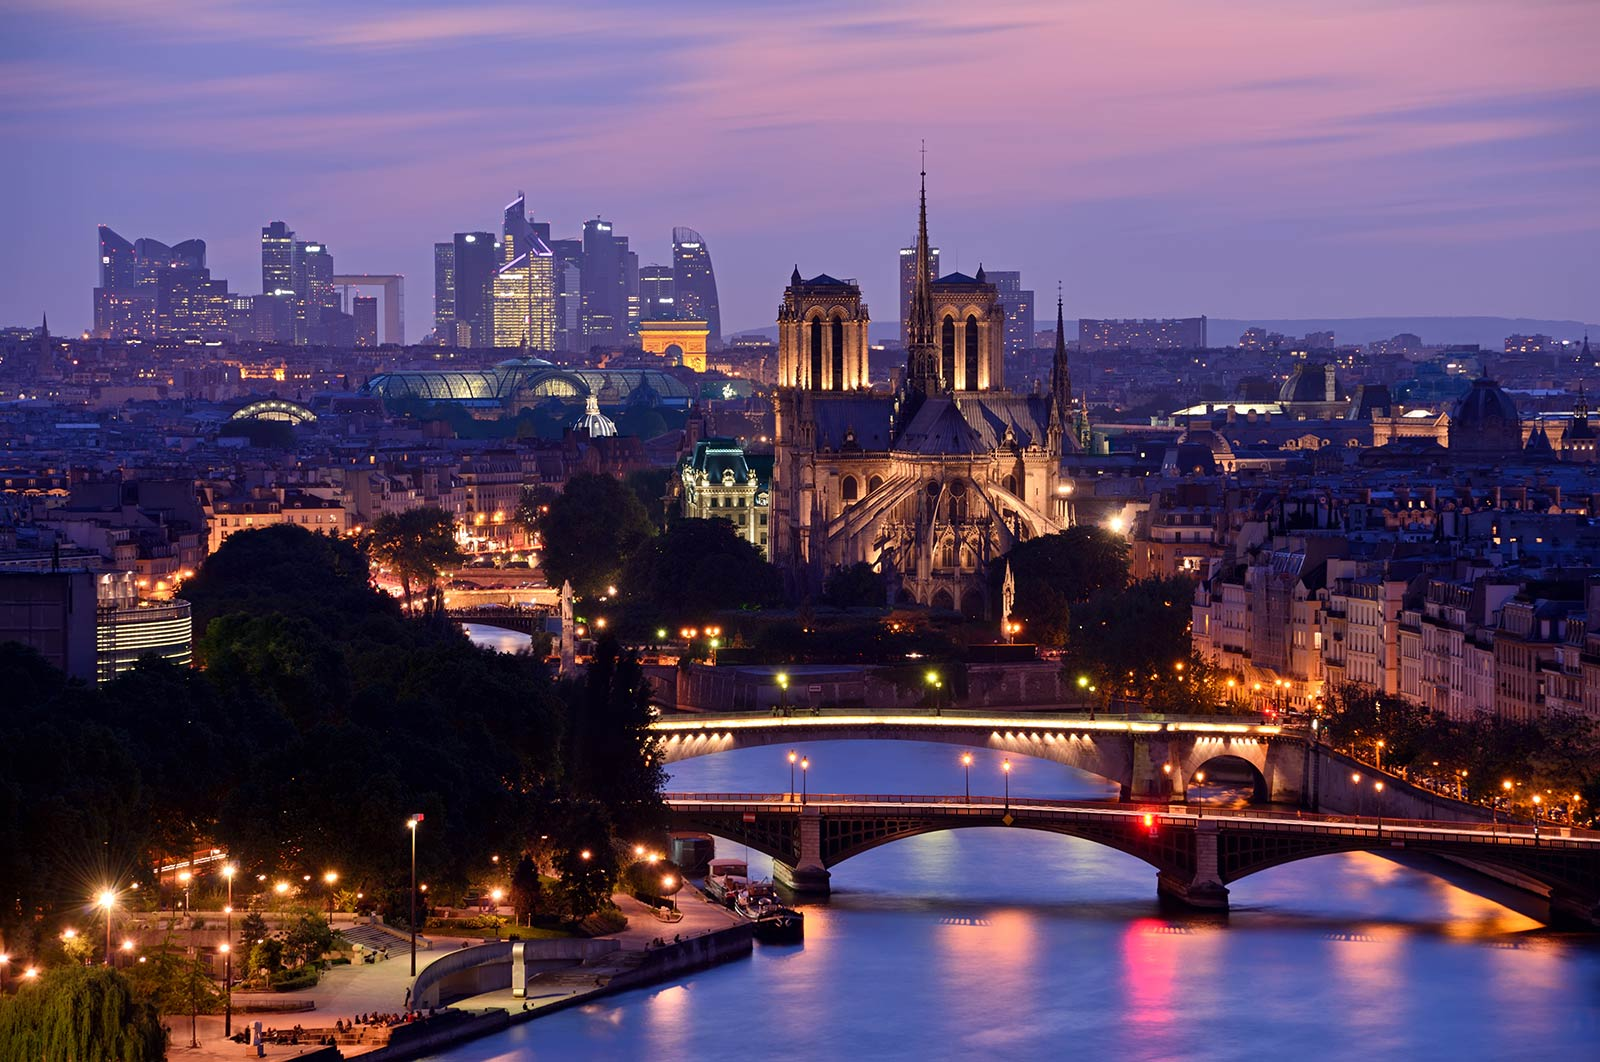 Paris skyline by night